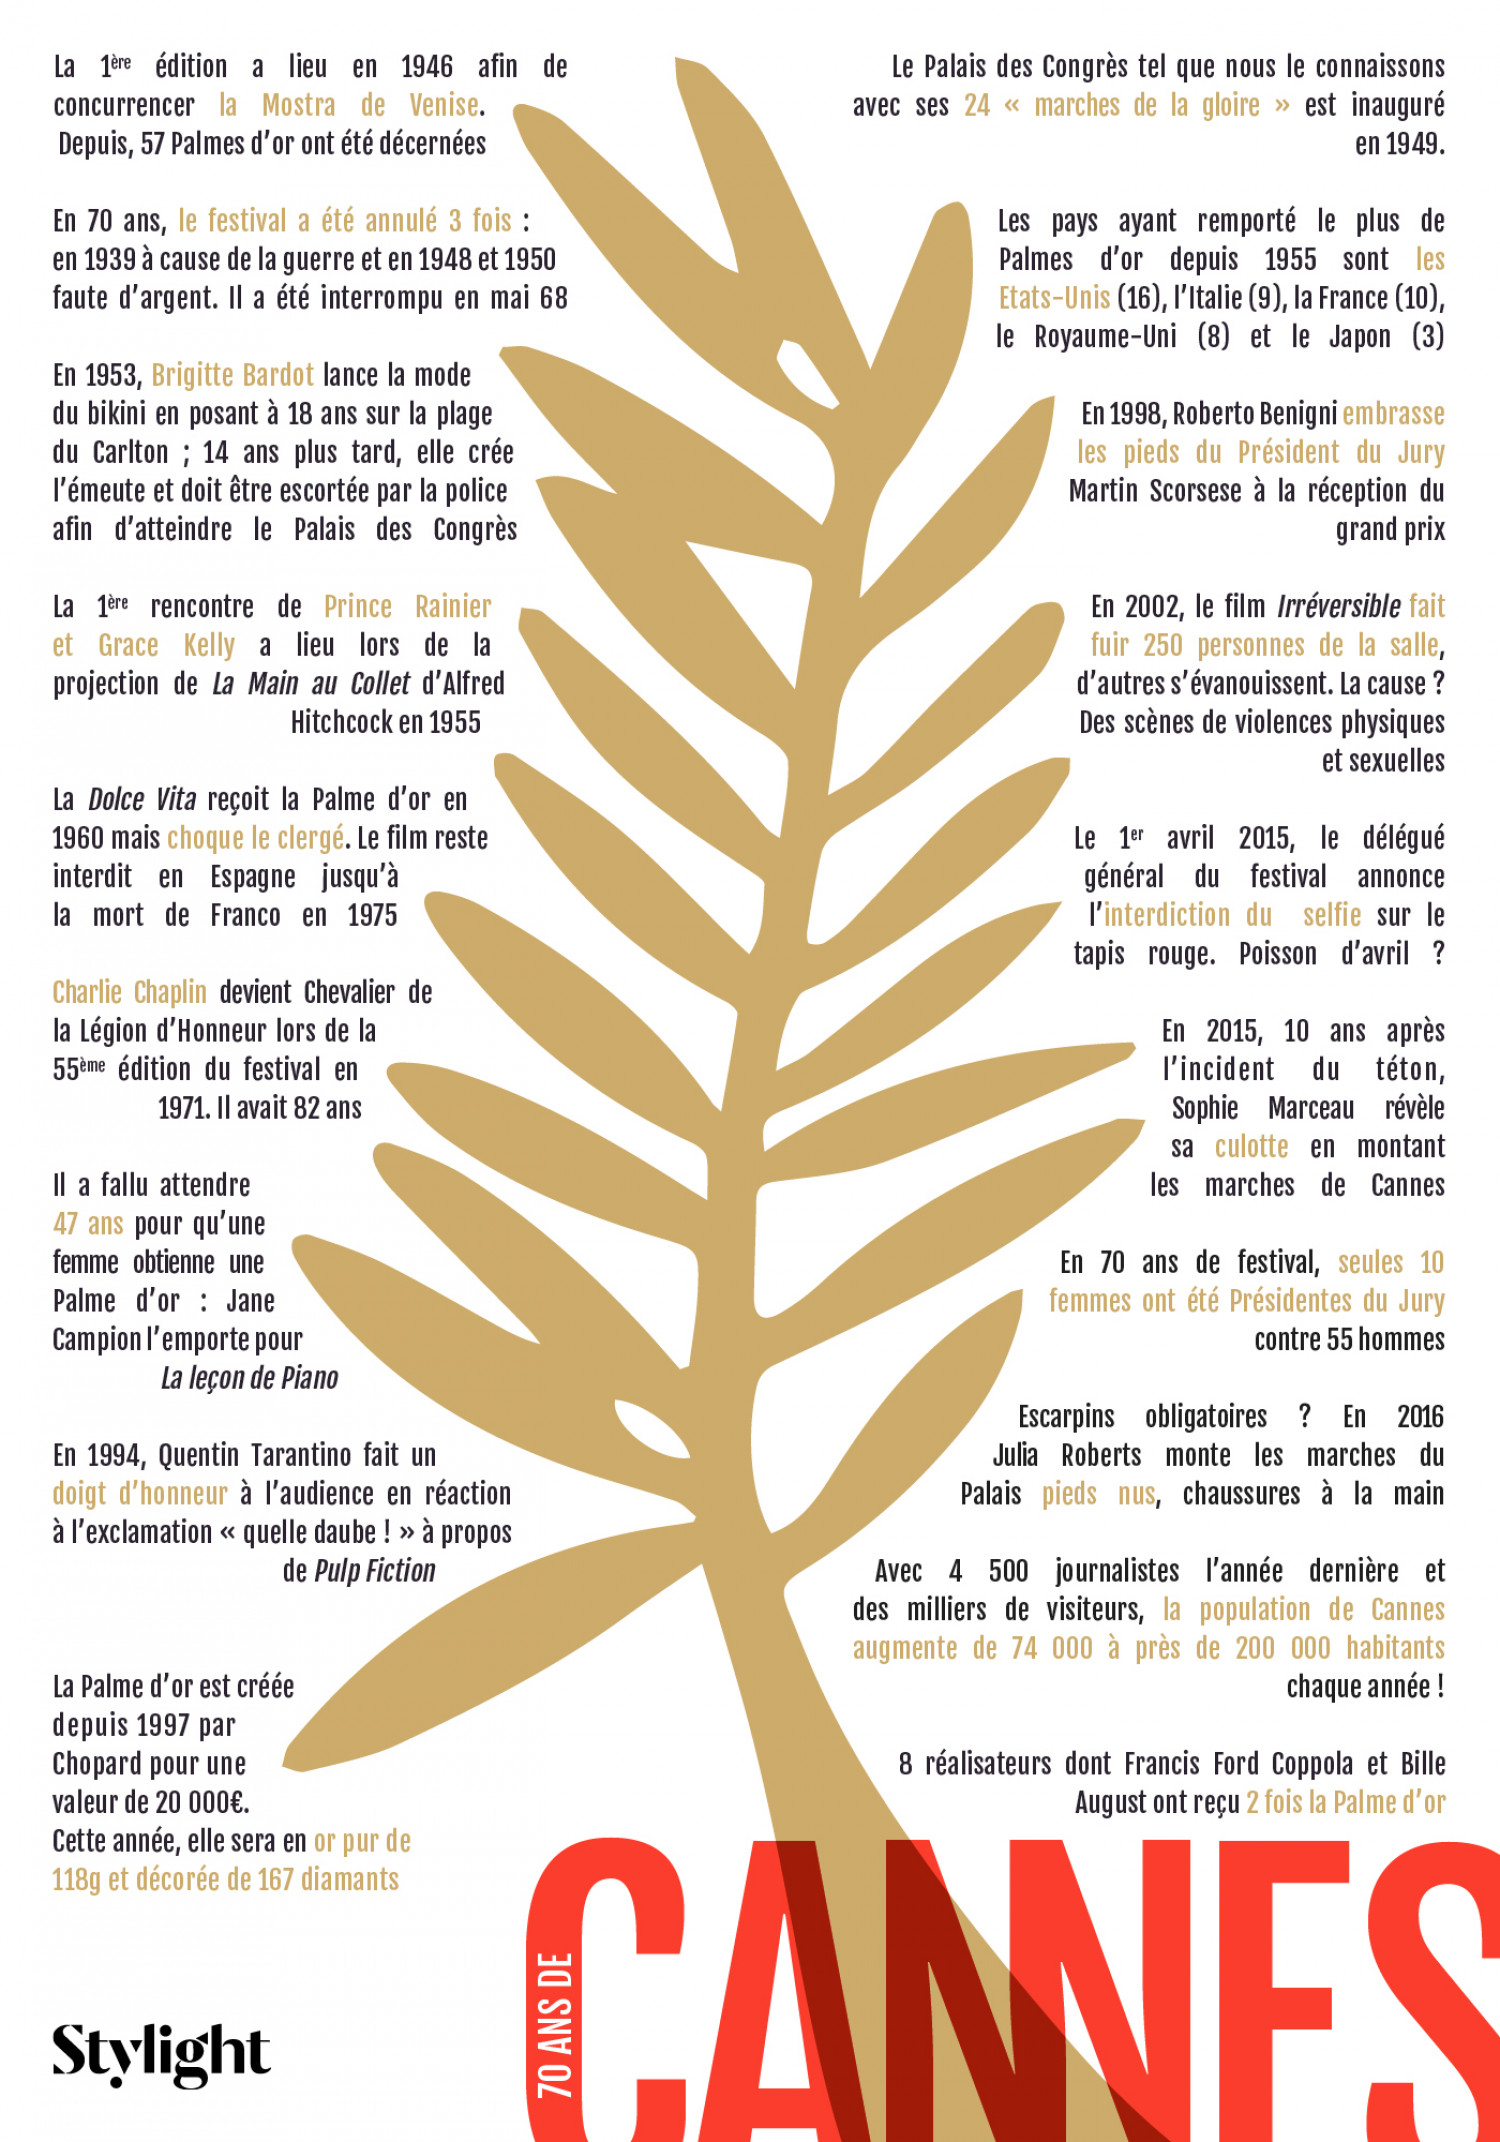 70 years of cannes festival Infographic